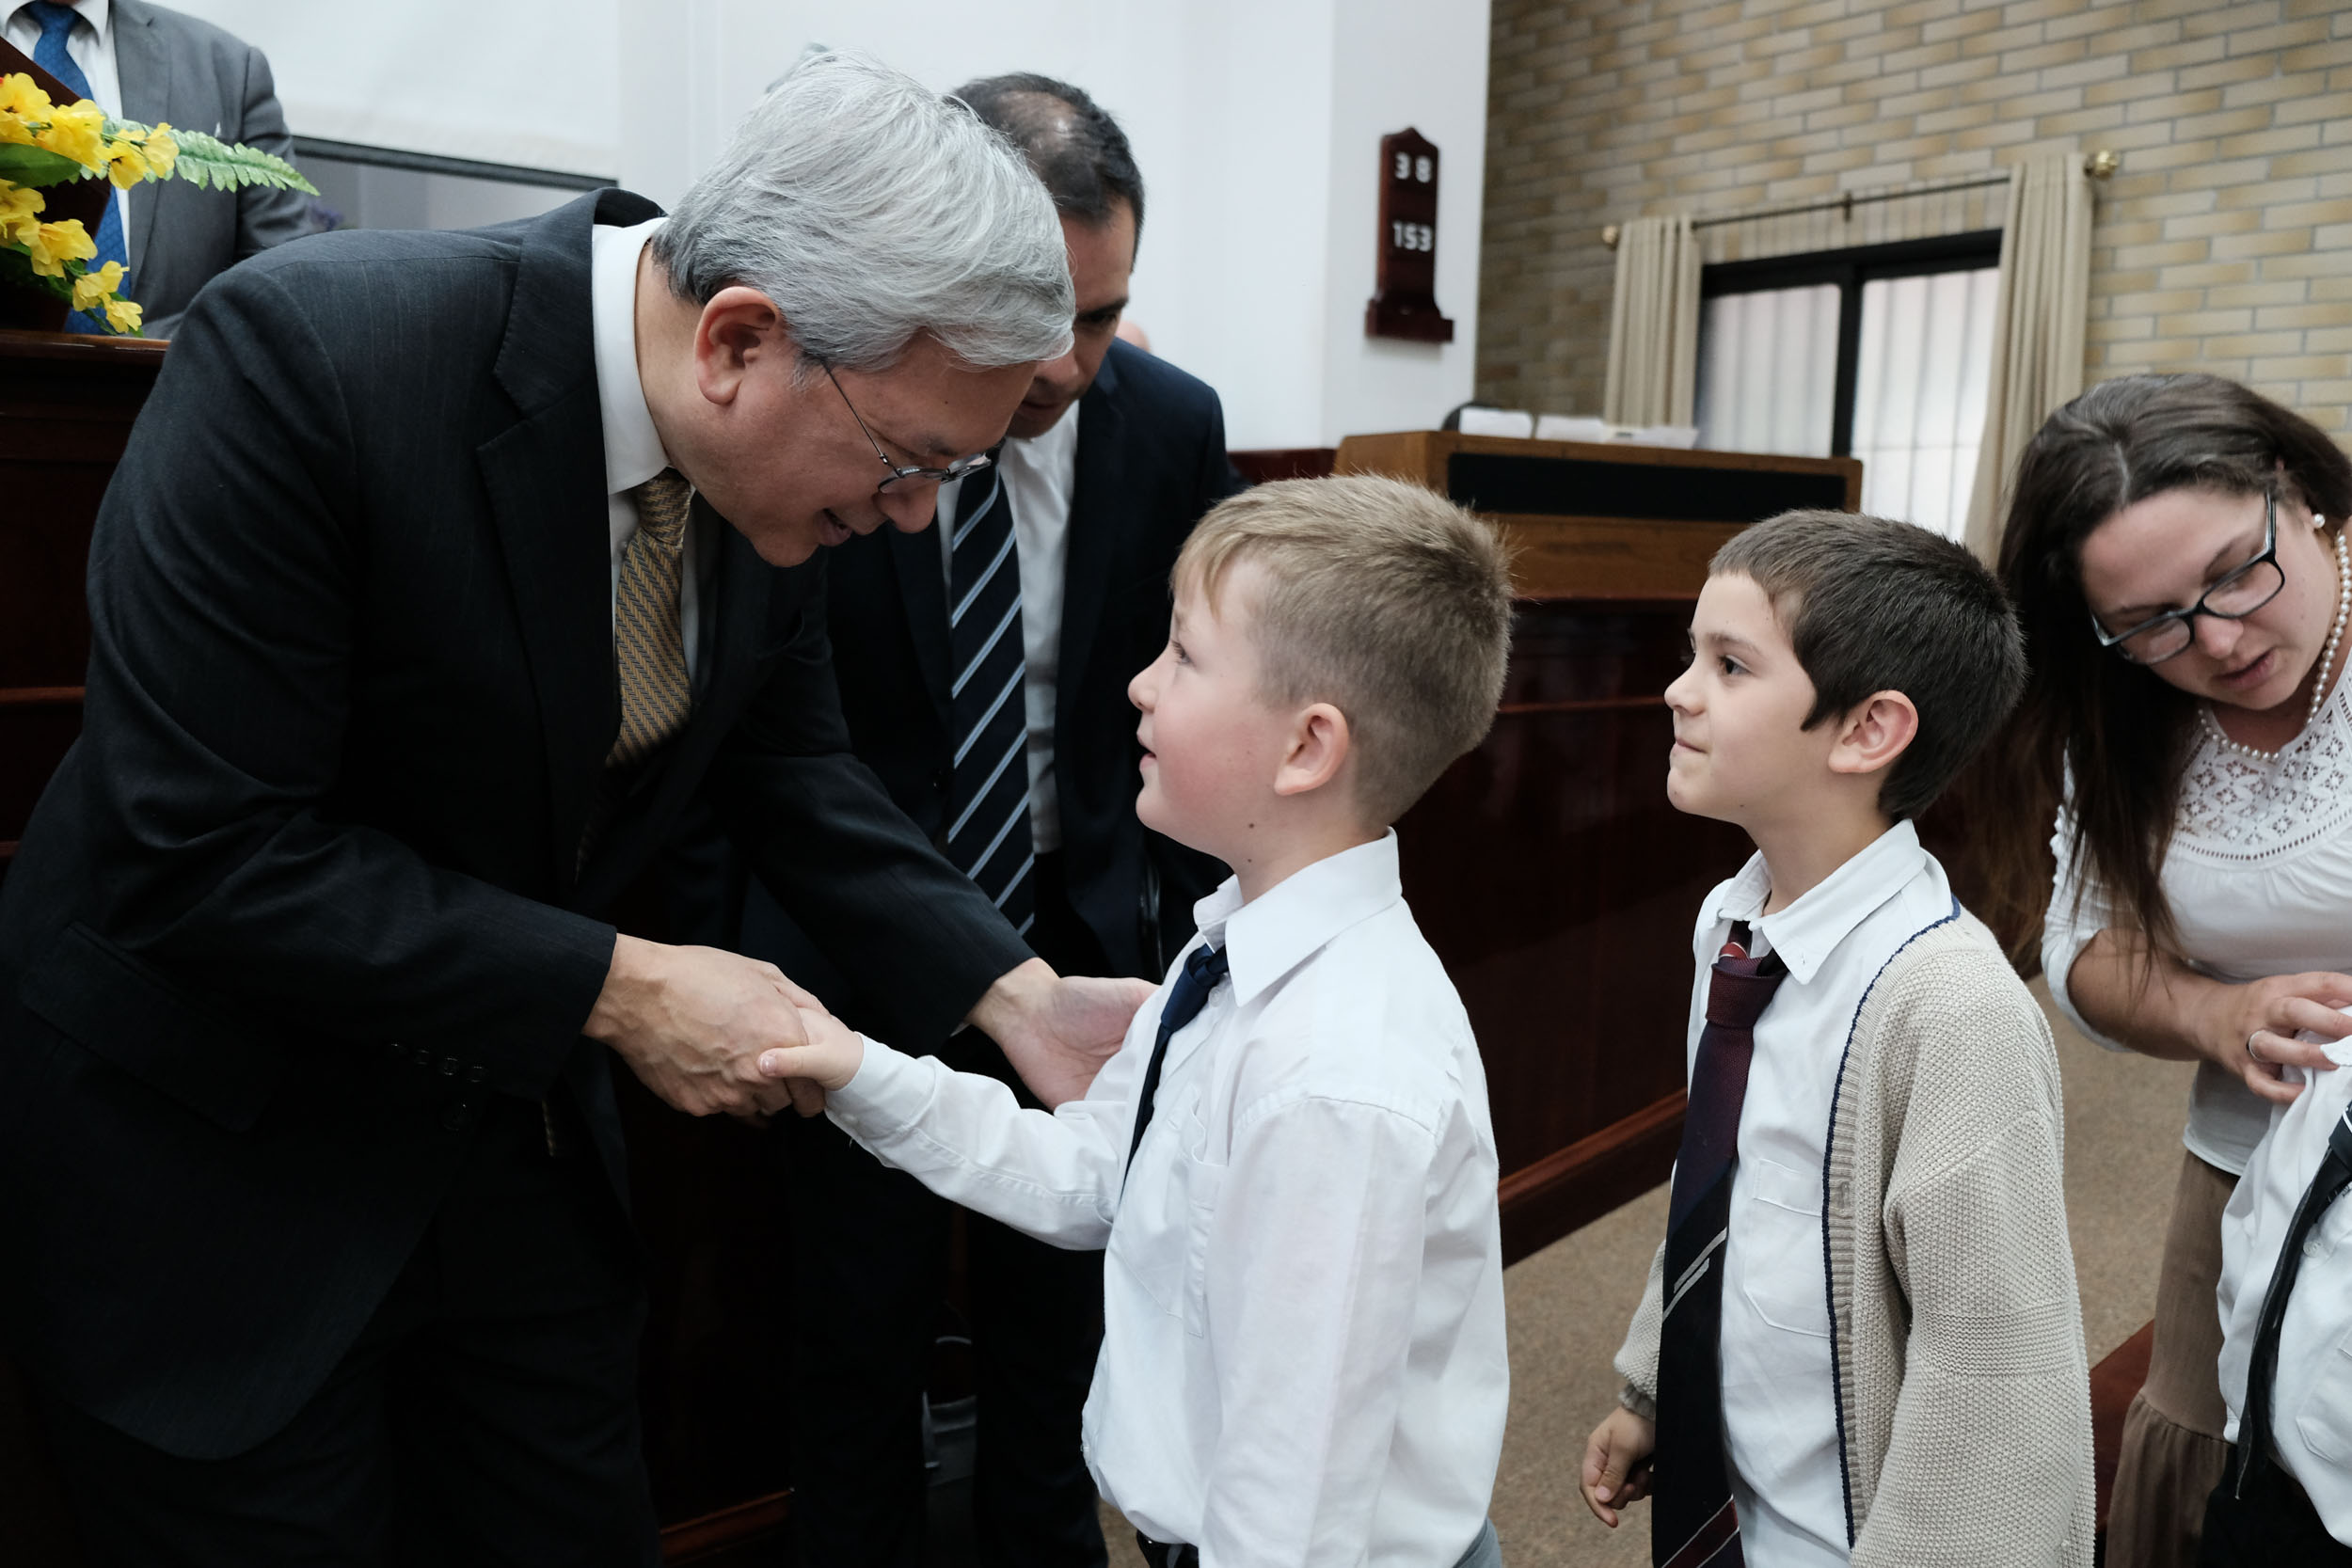 Elder Gong visits with members and children following a meeting in the Florida Uruguay District on Nov. 13. This was the first visit of an Apostle to the District.